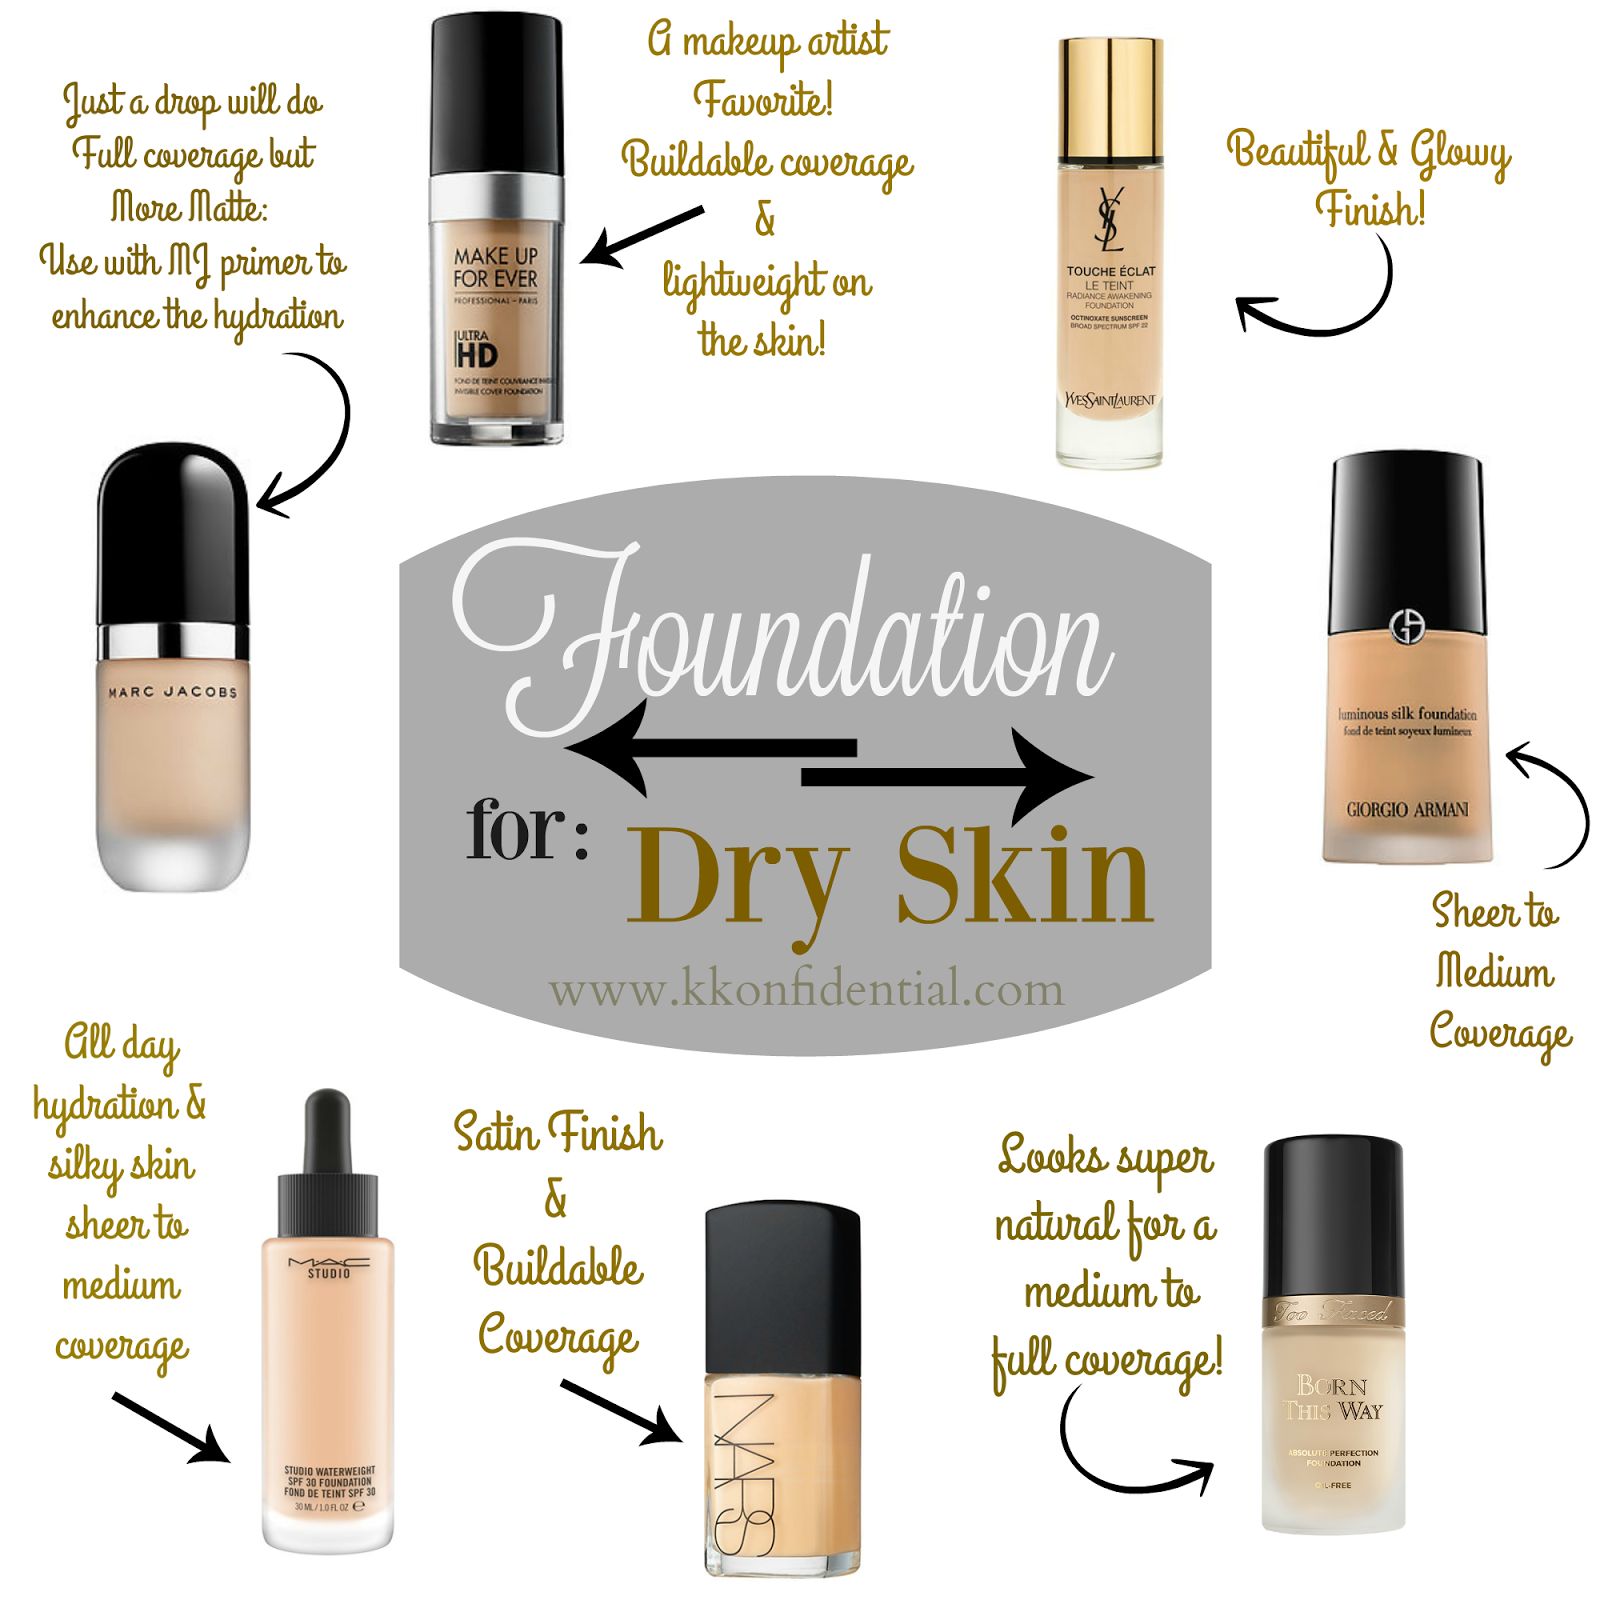 My Top Picks For Best Foundations For Dry Skin Are: